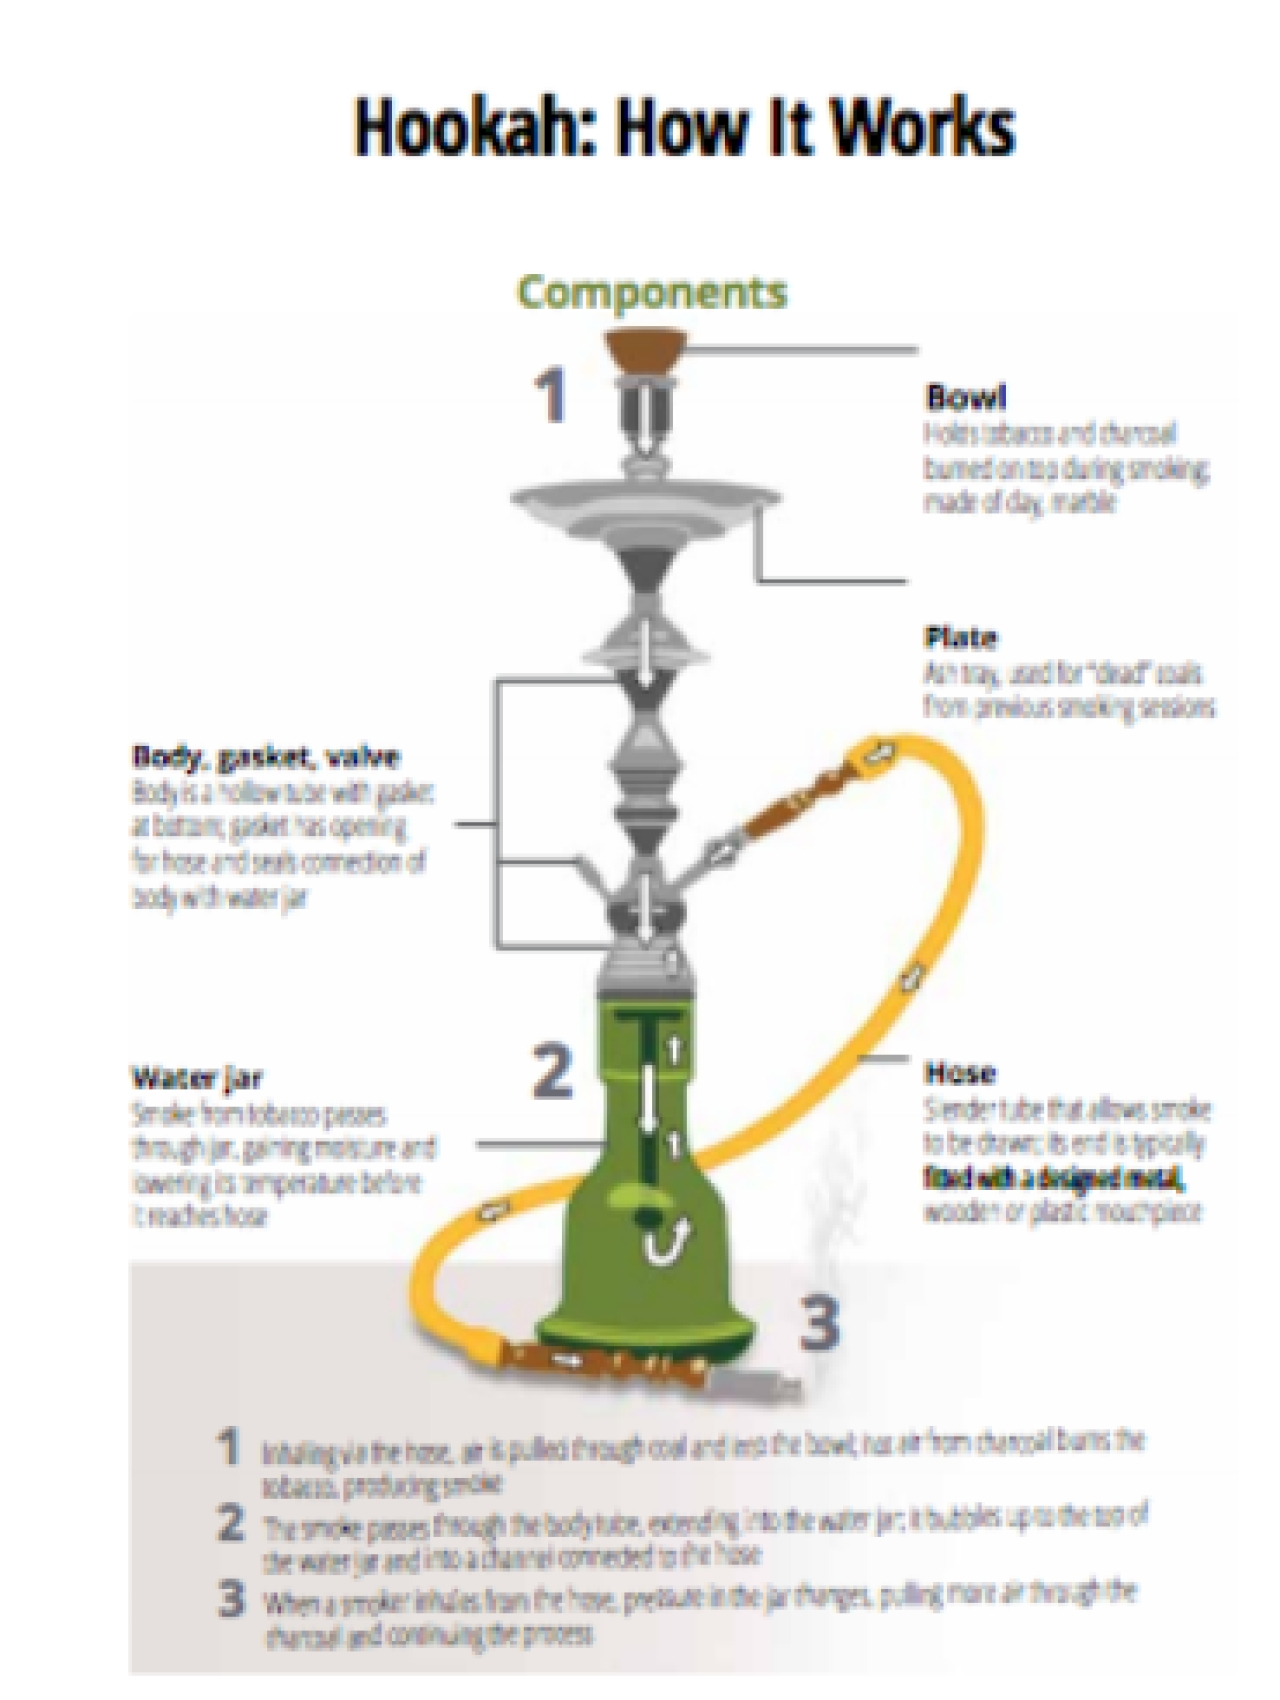 The well-crafted hookah evokes an image of feminine beauty with its elegant and curvy profile